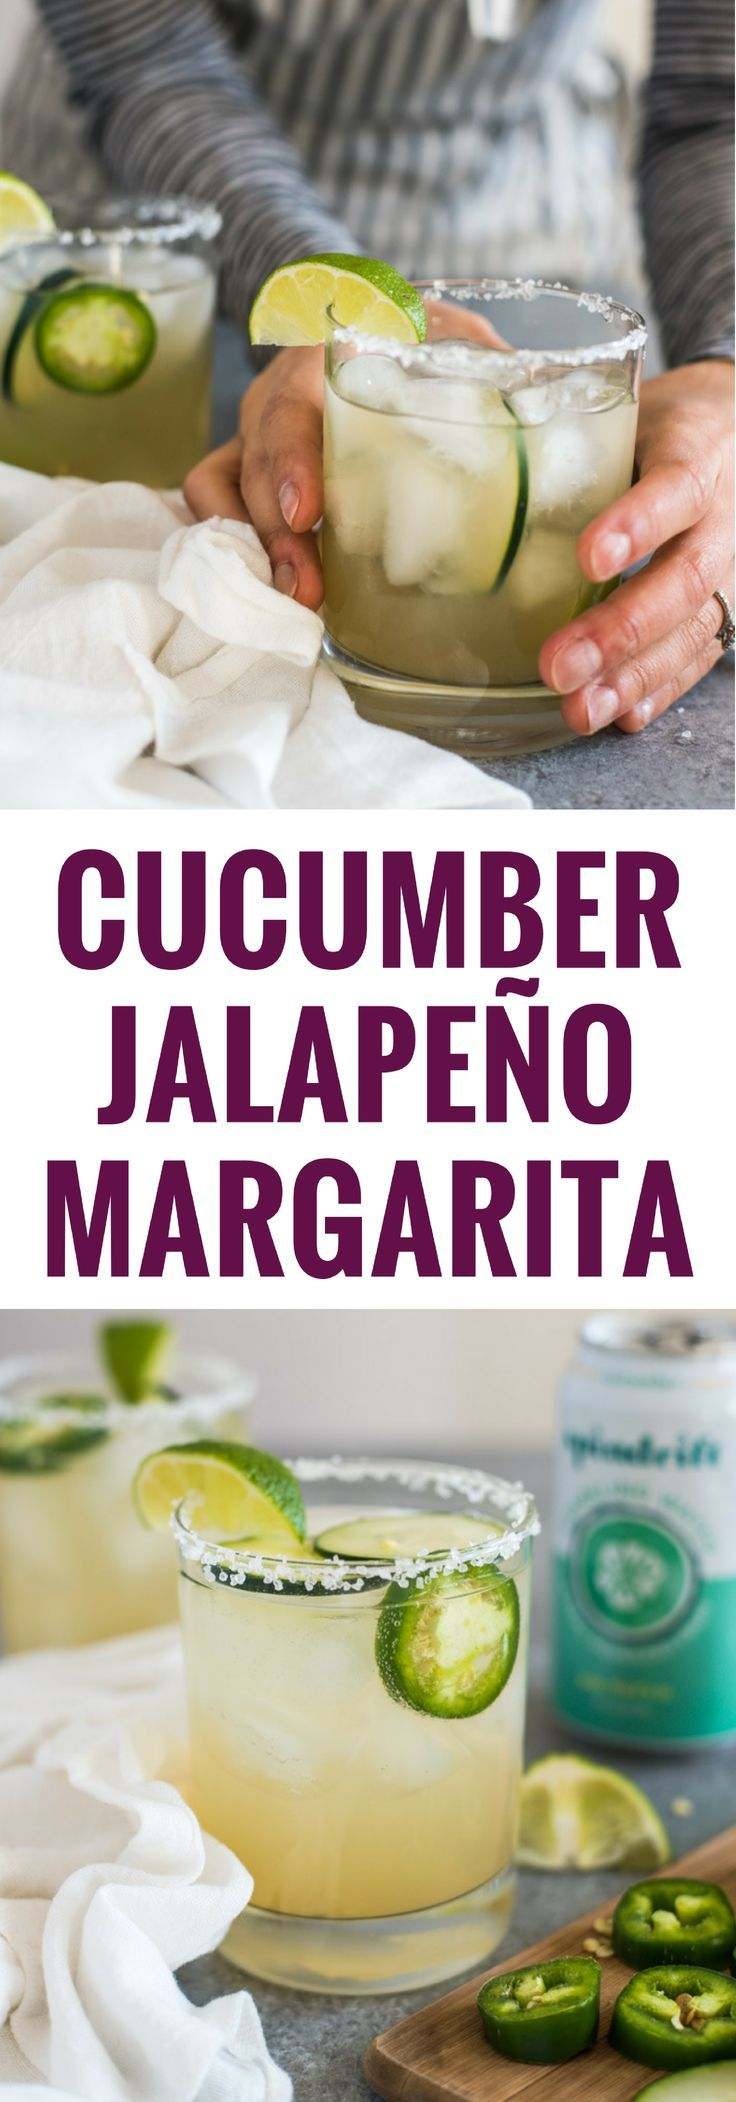 A Cucumber Jalapeno Margarita made with refreshing cucumber sparkling water, fresh jalapeños and organic agave nectar because it's 5 o'clock somewhere!